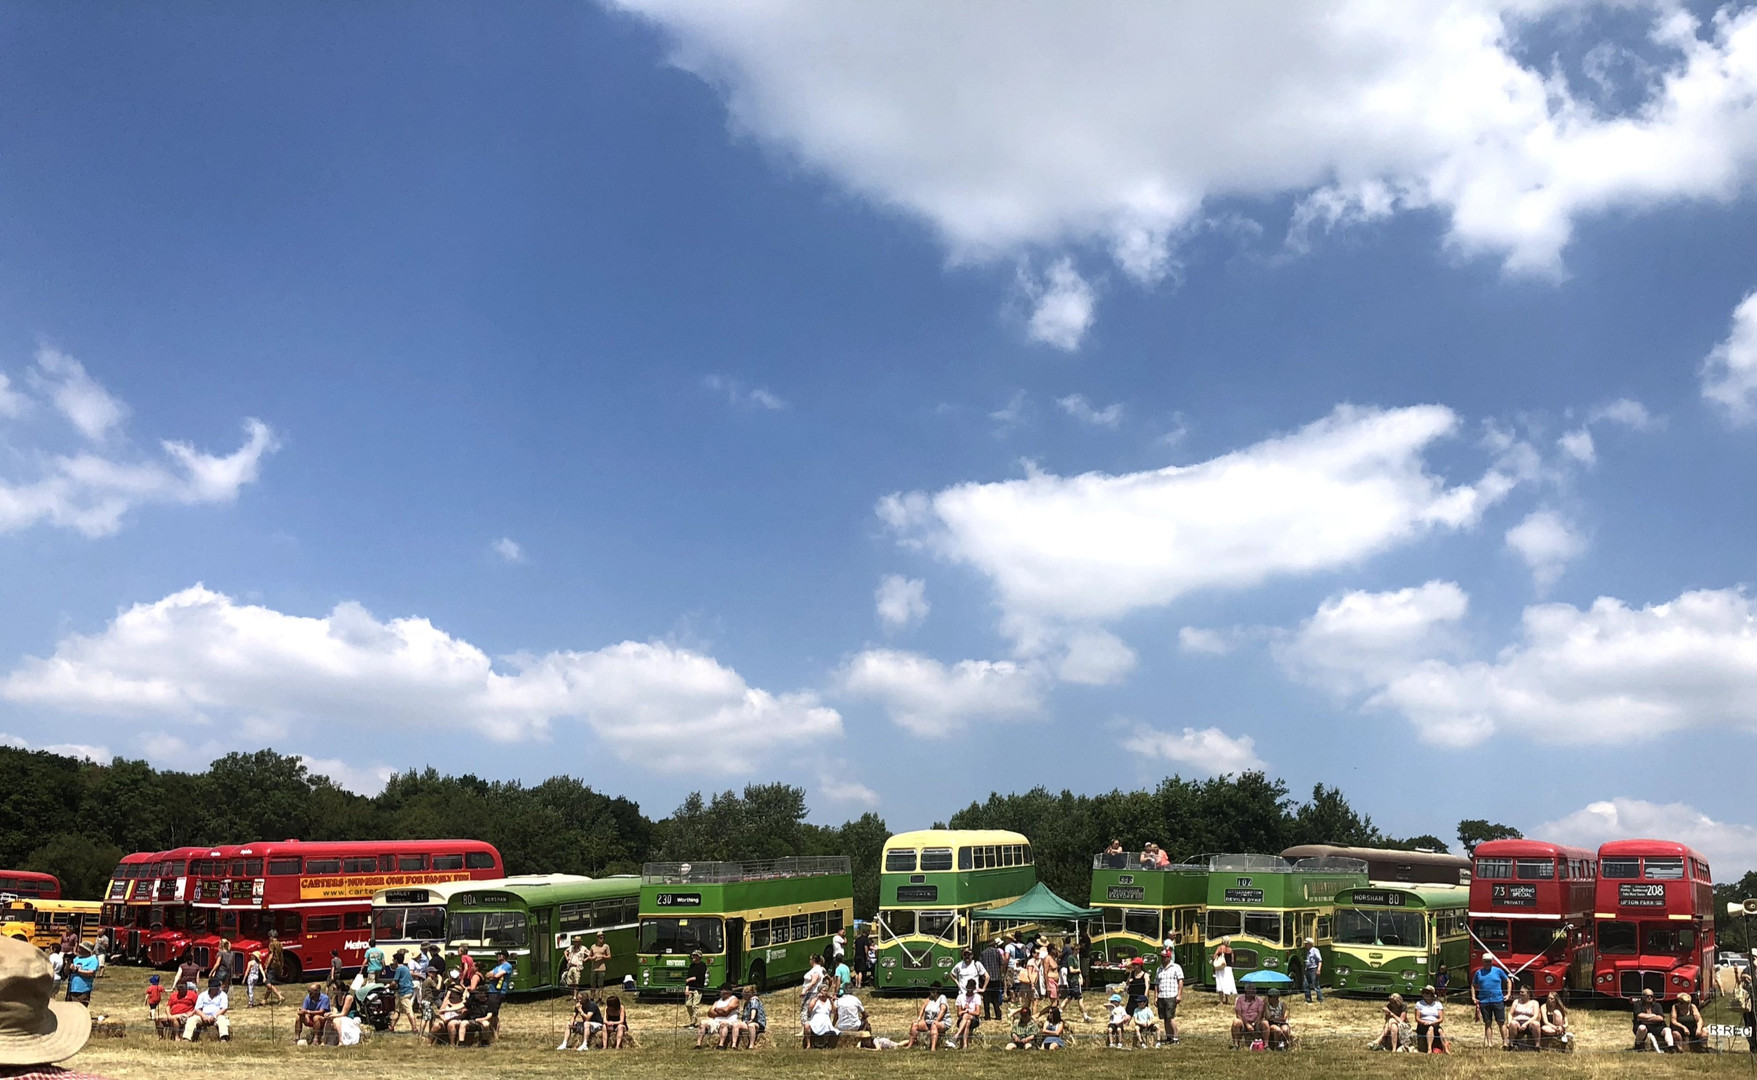 Buses at Wiston Steam Rally